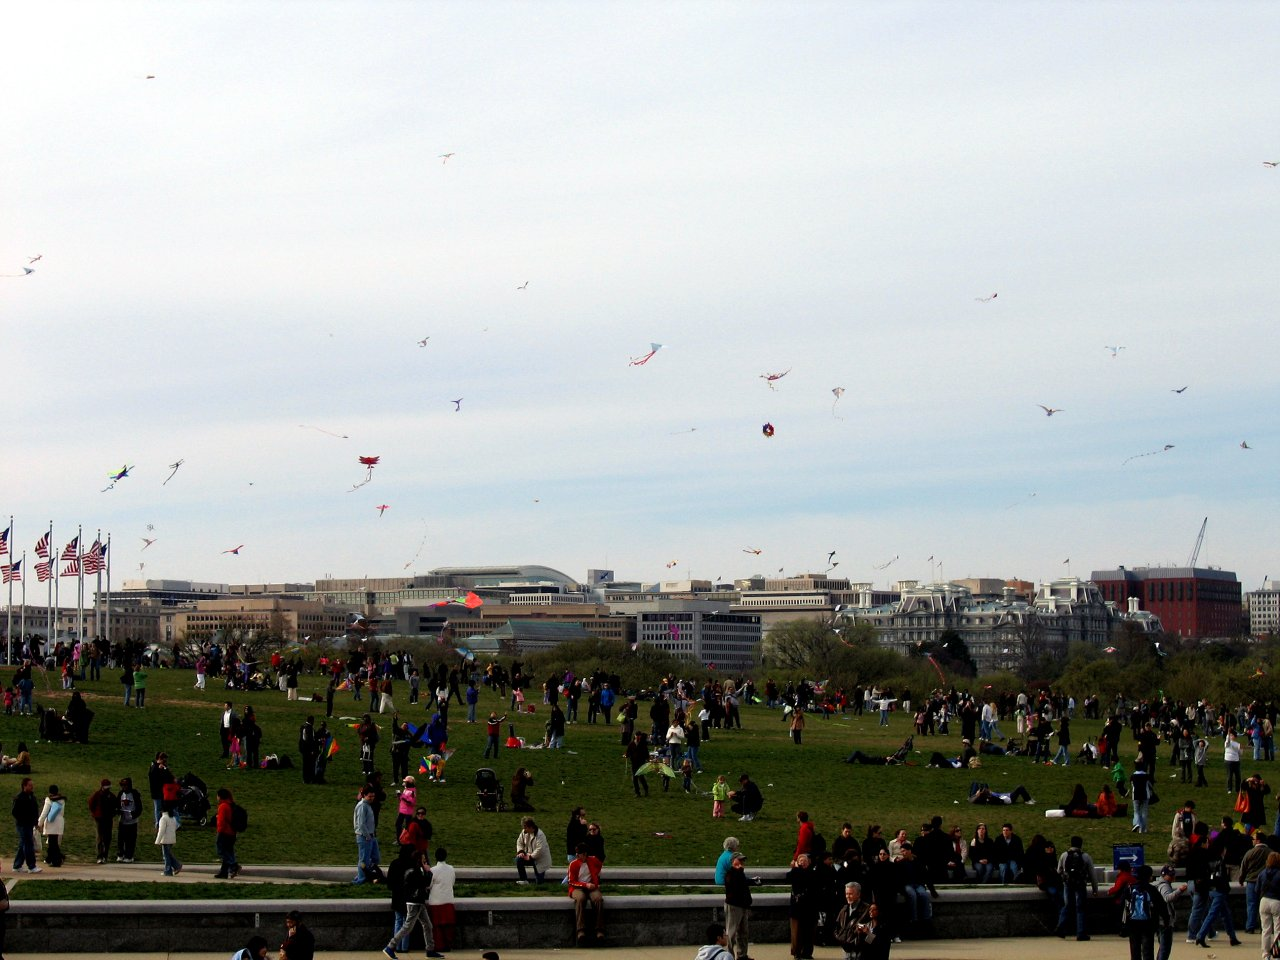 Kite Festival in Washington D.C.